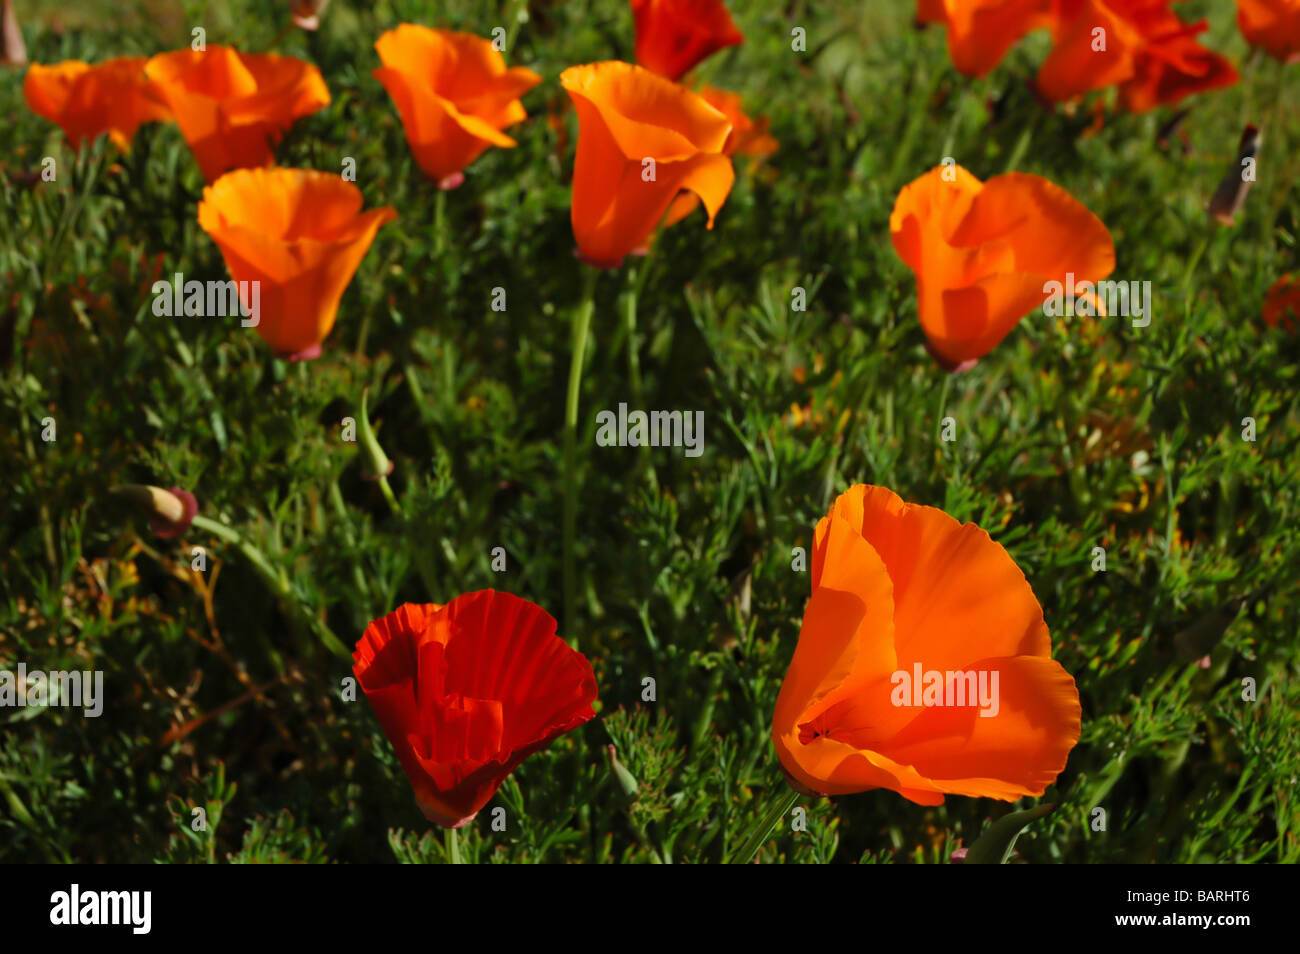 Field of california poppies california state flower stock photo field of california poppies california state flower mightylinksfo